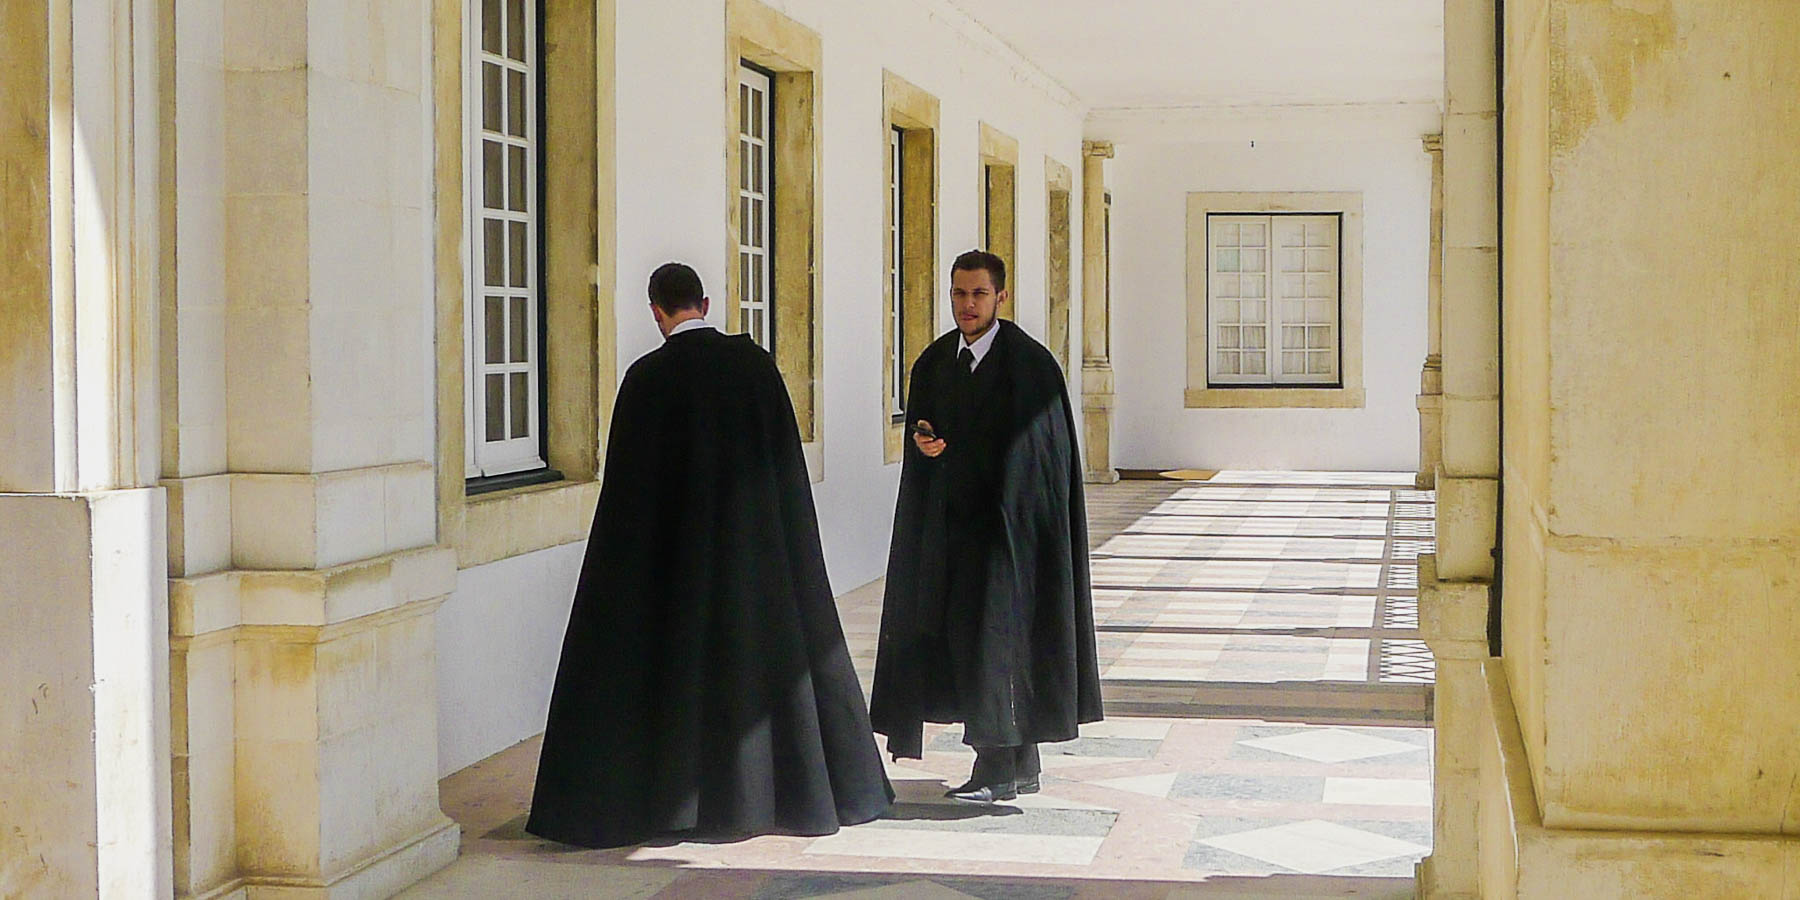 Portuguese university students wearing Harry Potter capes.